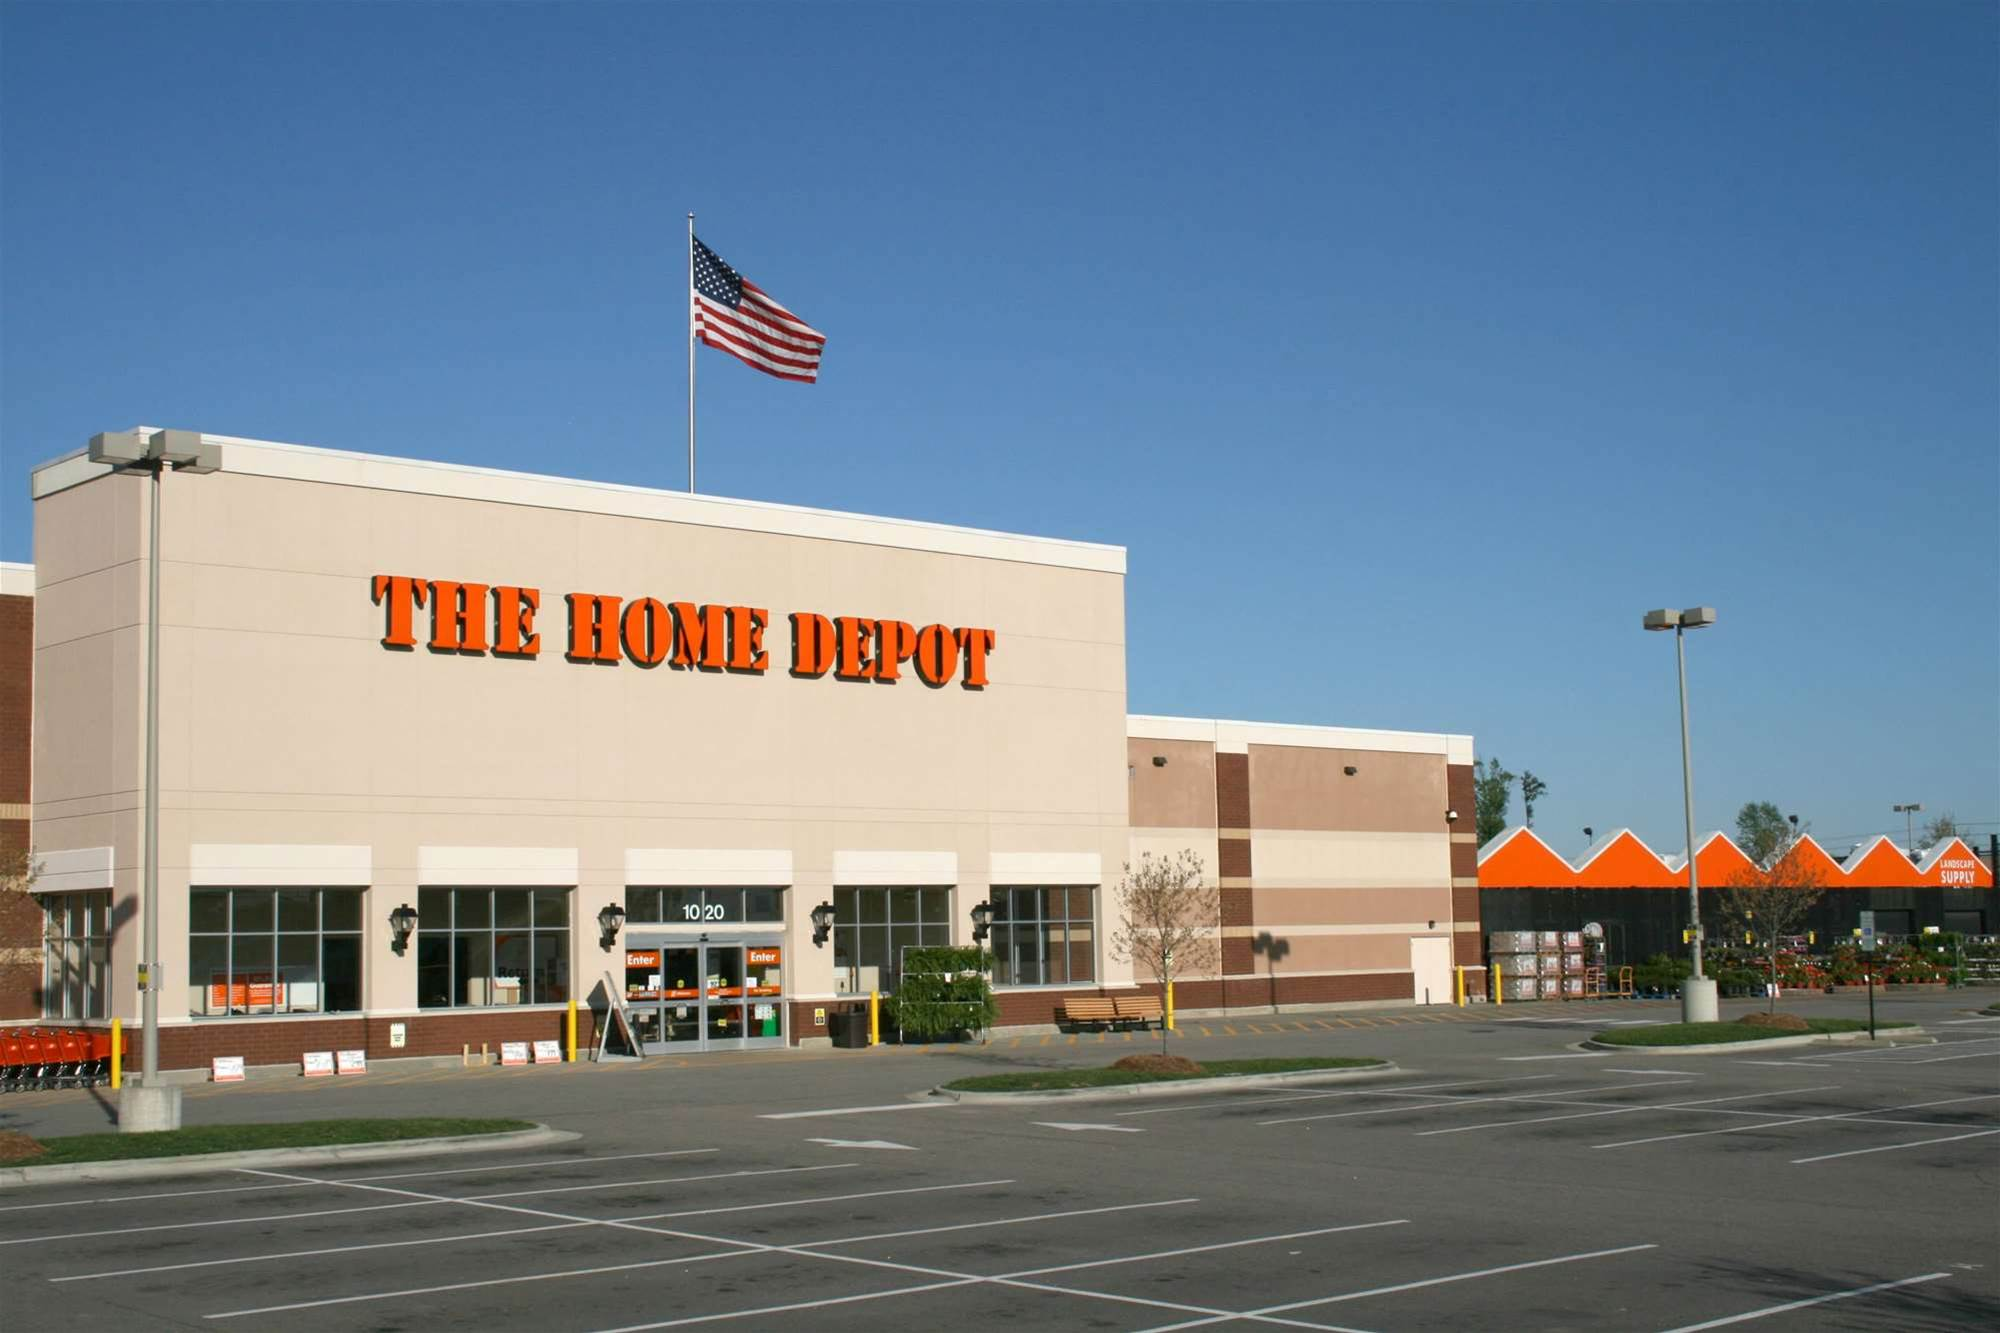 Home Depot pays $33 million to settle data breach case